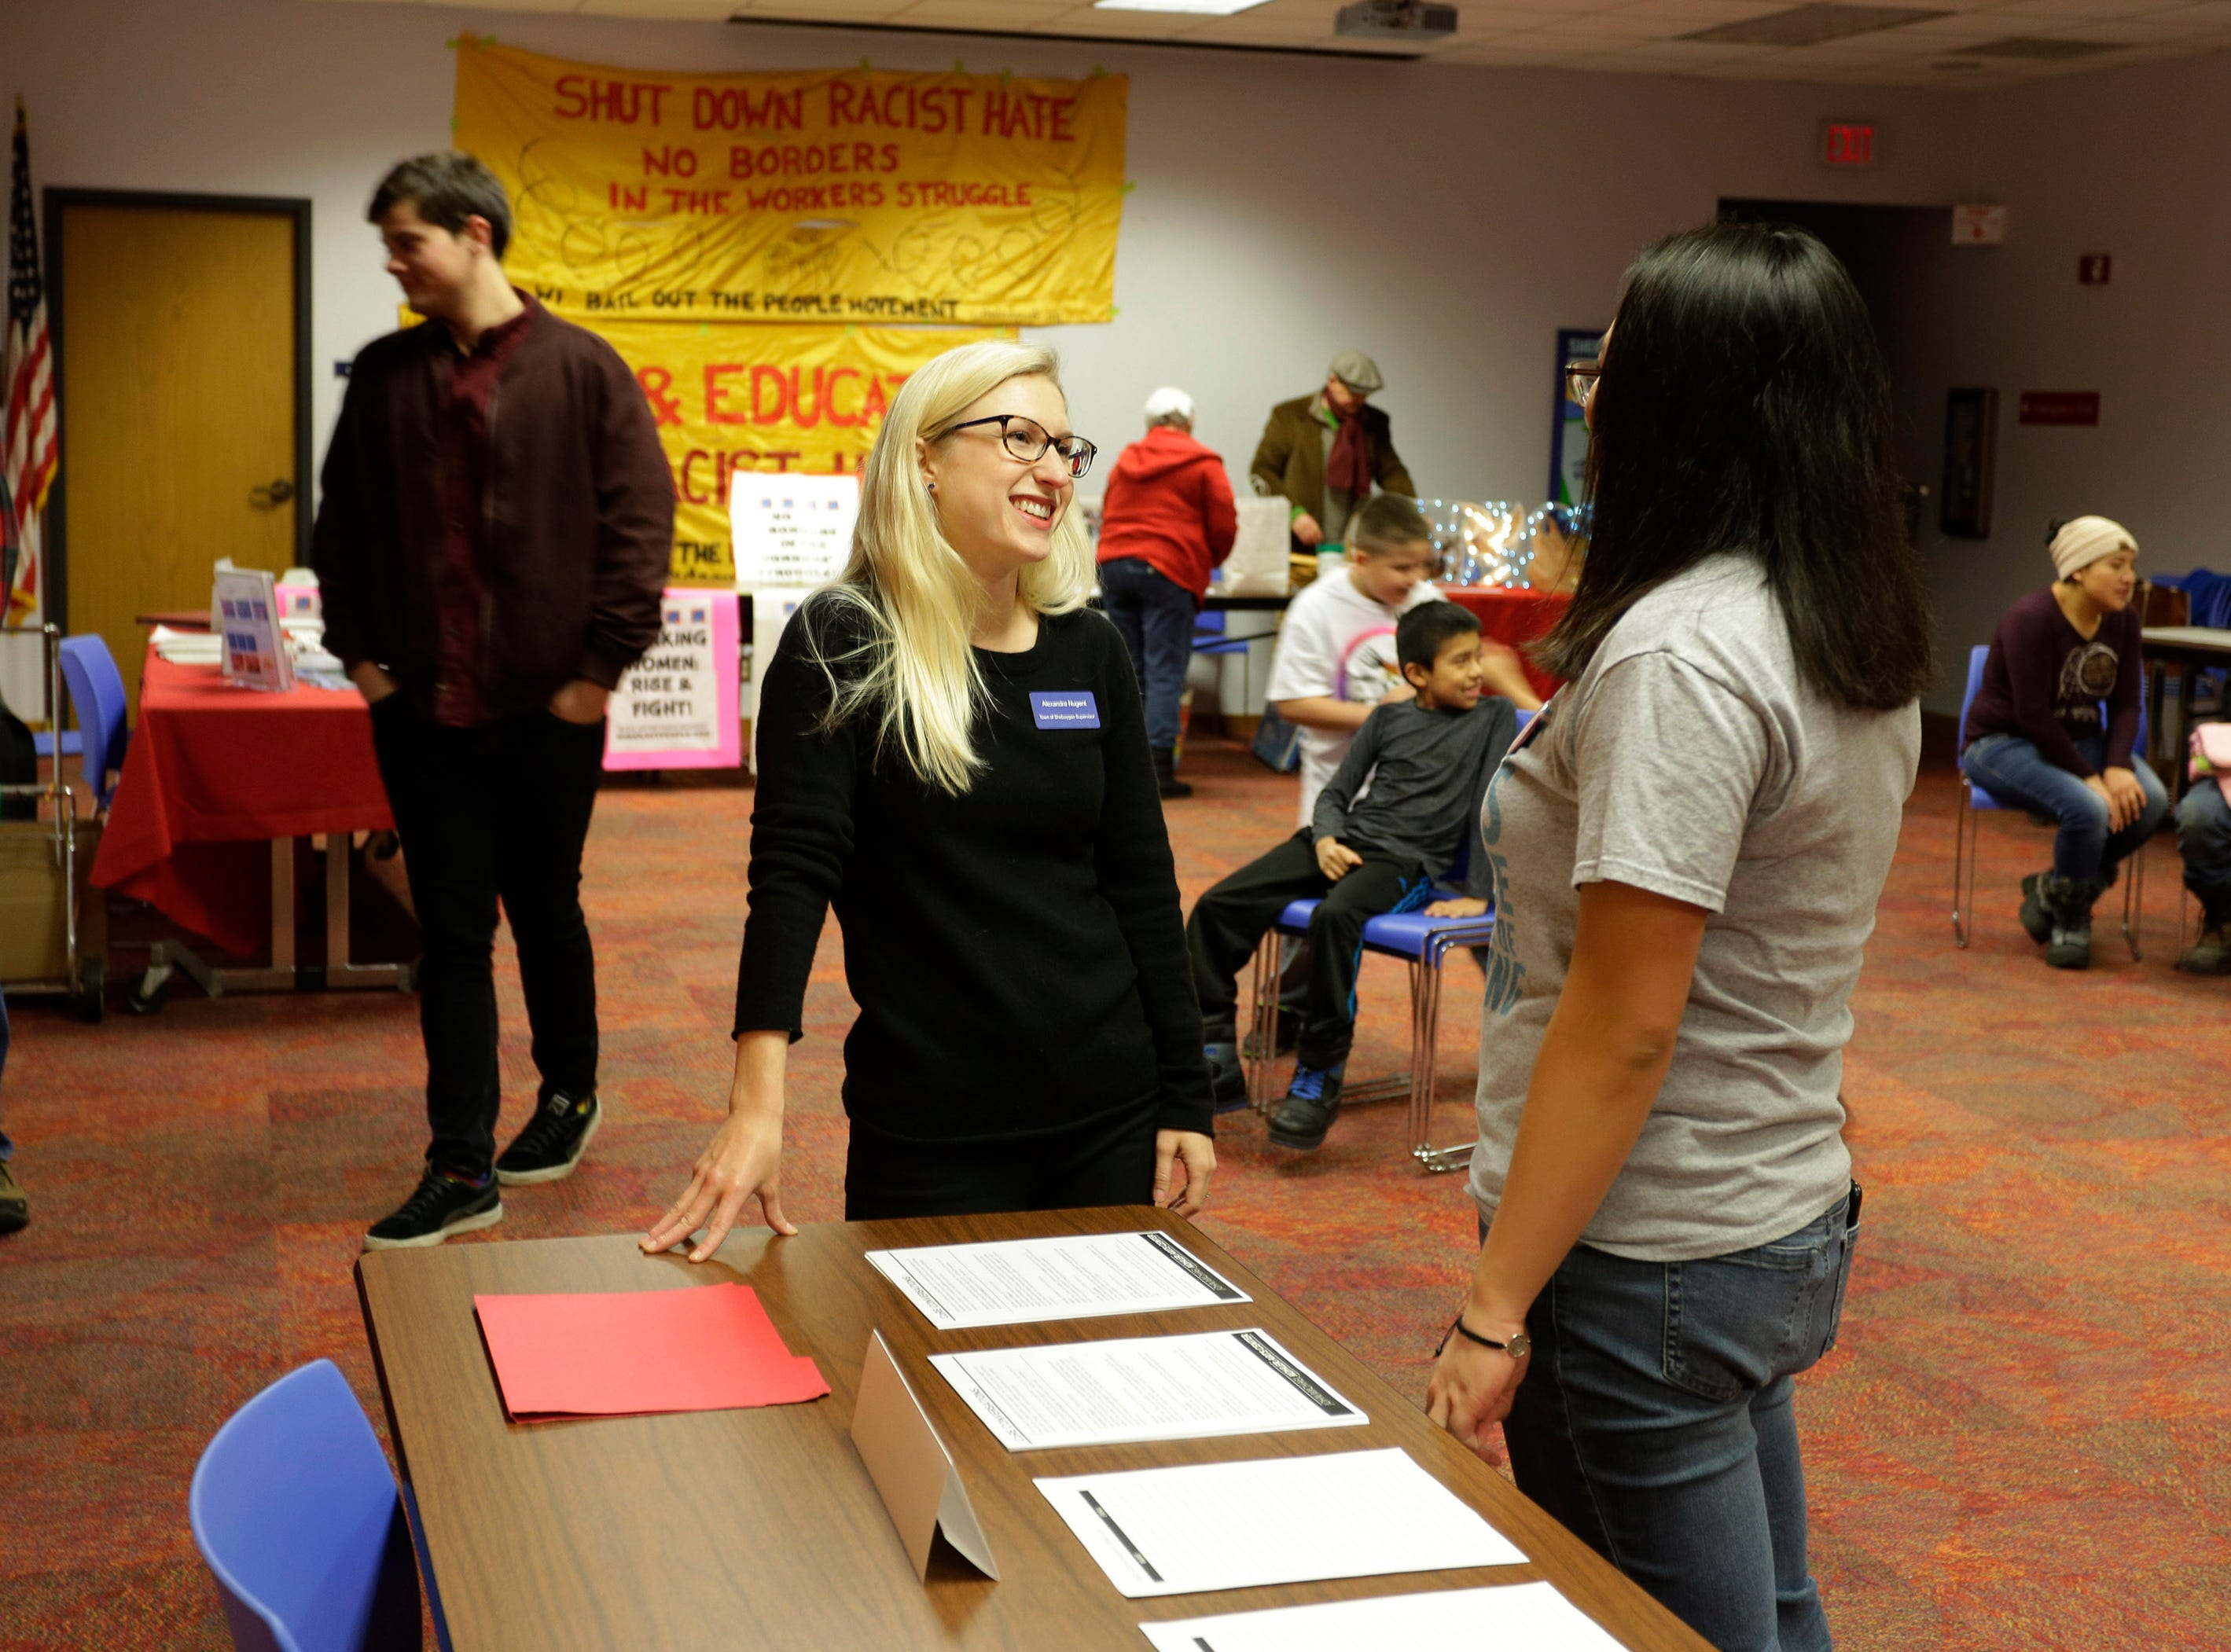 Alexandra Nugent, left, talks to Domini Que Lee at the Sheboygan Community meeting at Mead Public Library, Saturday, January 19, 2019, in Sheboygan, Wis.